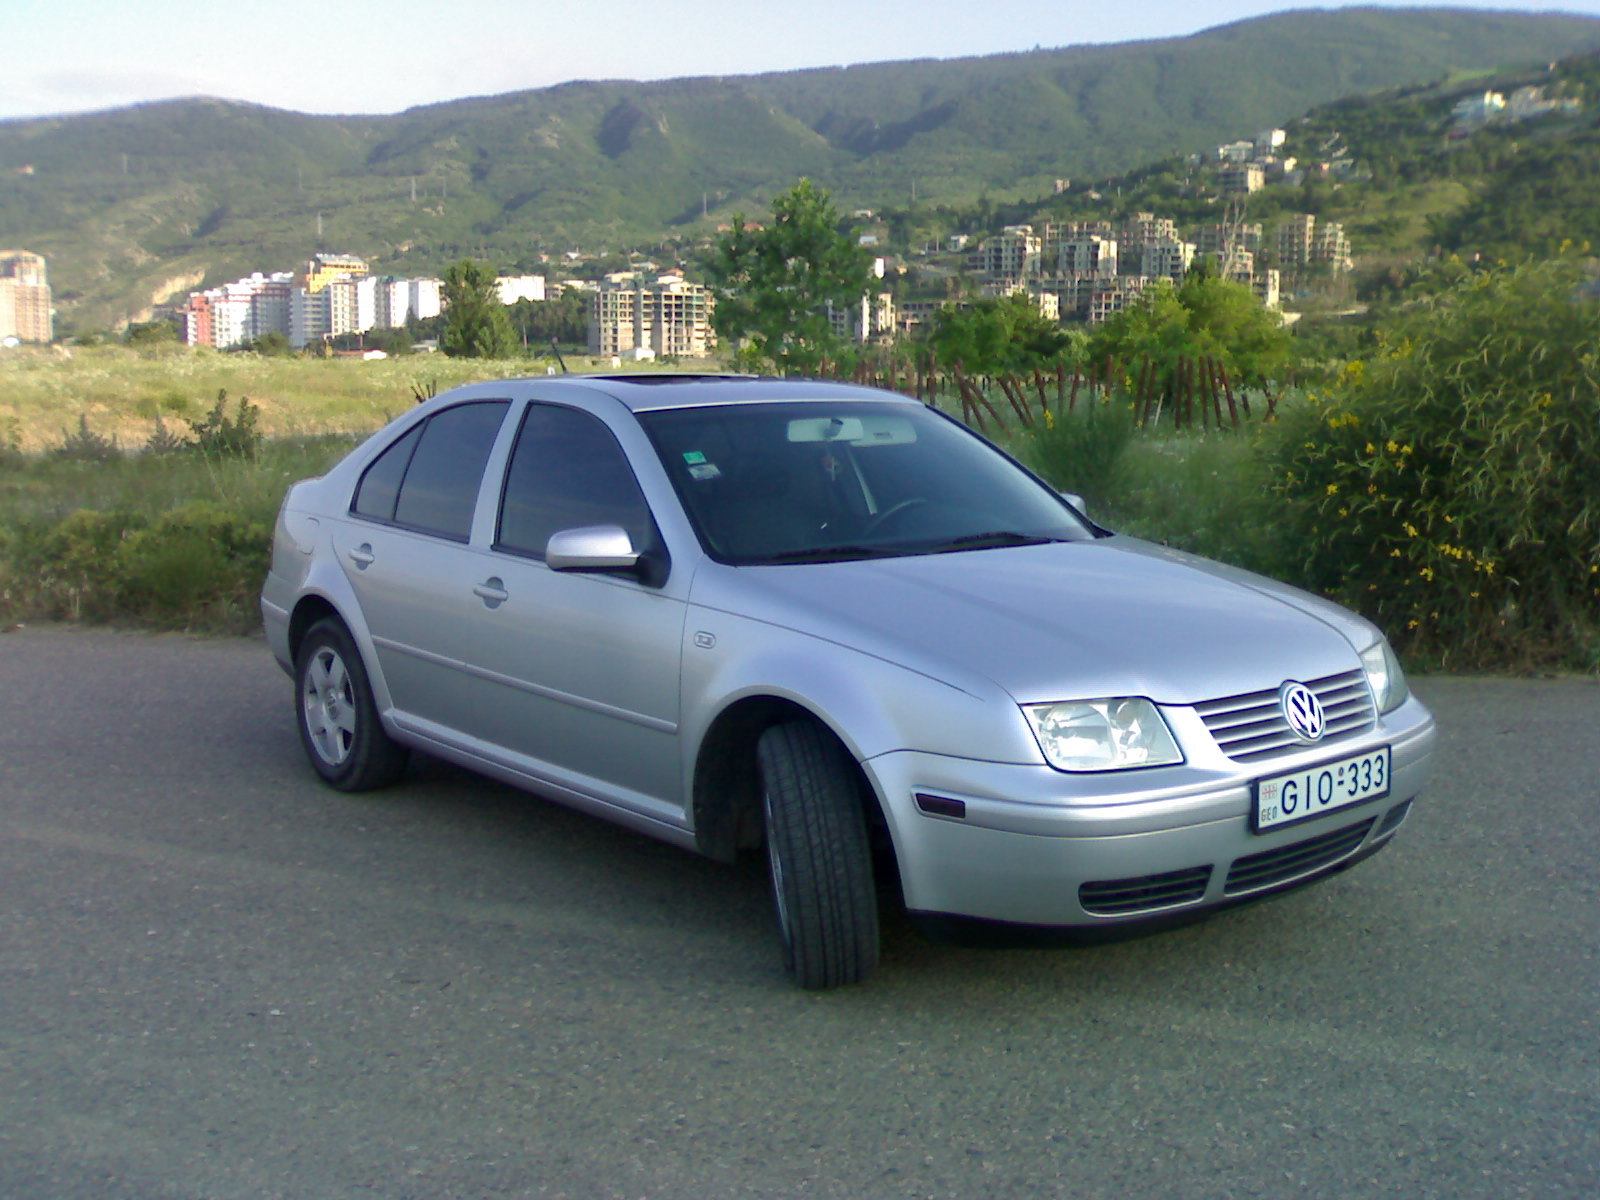 gio-333 2000 Volkswagen Jetta Specs, Photos, Modification Info at CarDomain